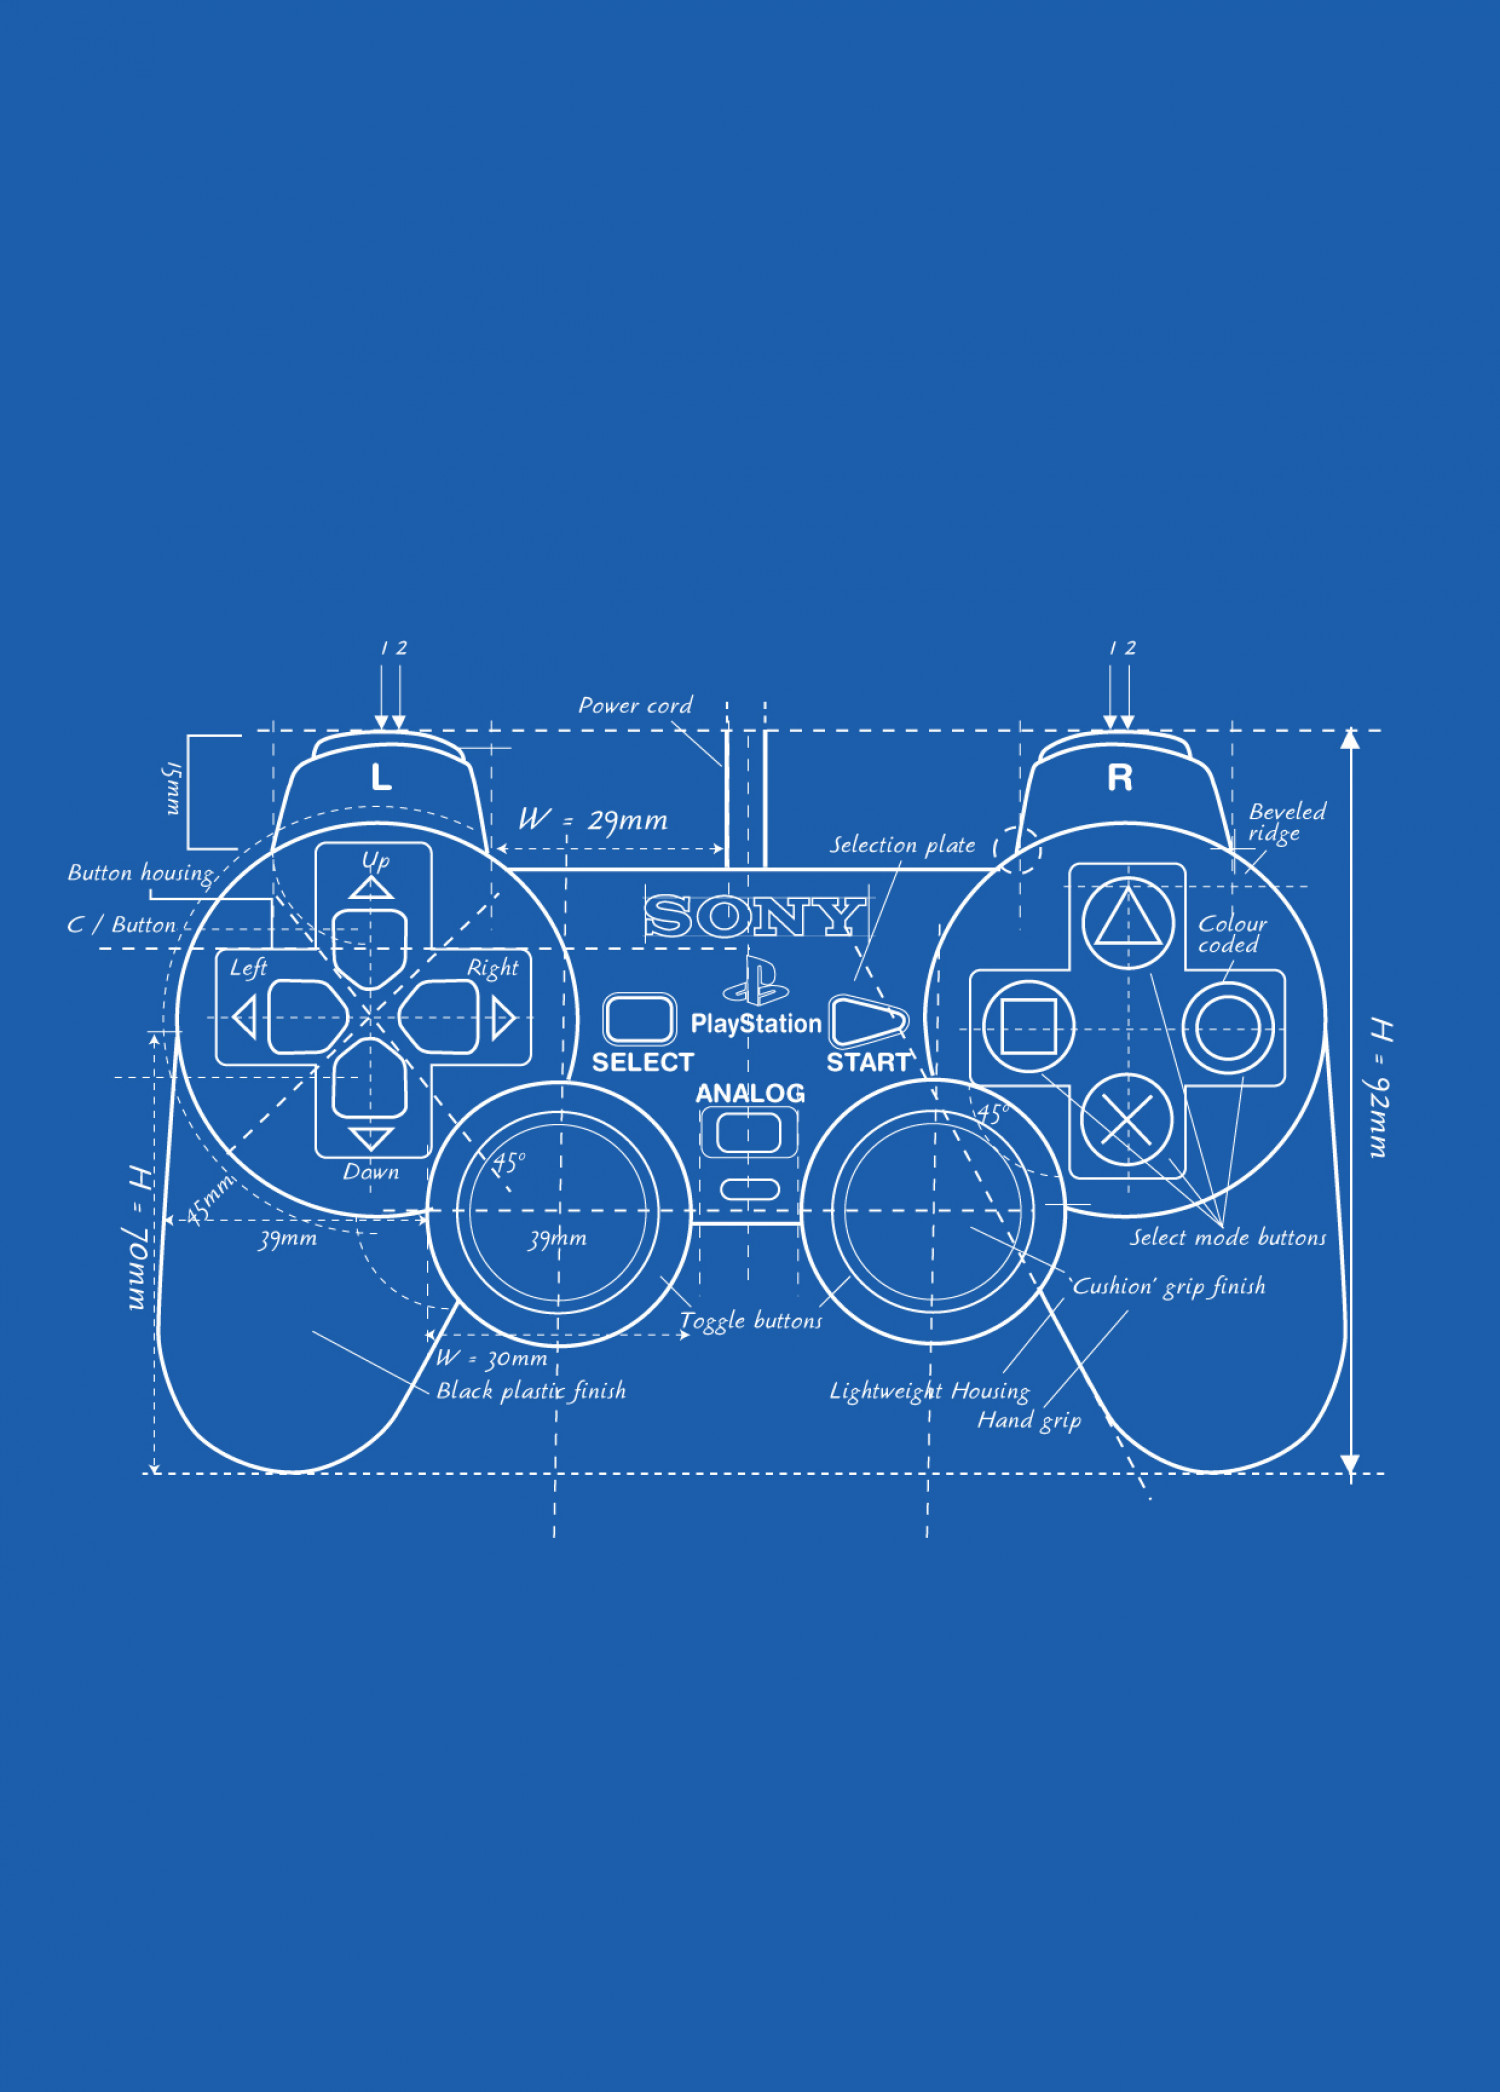 Playstation / Musica Infographic